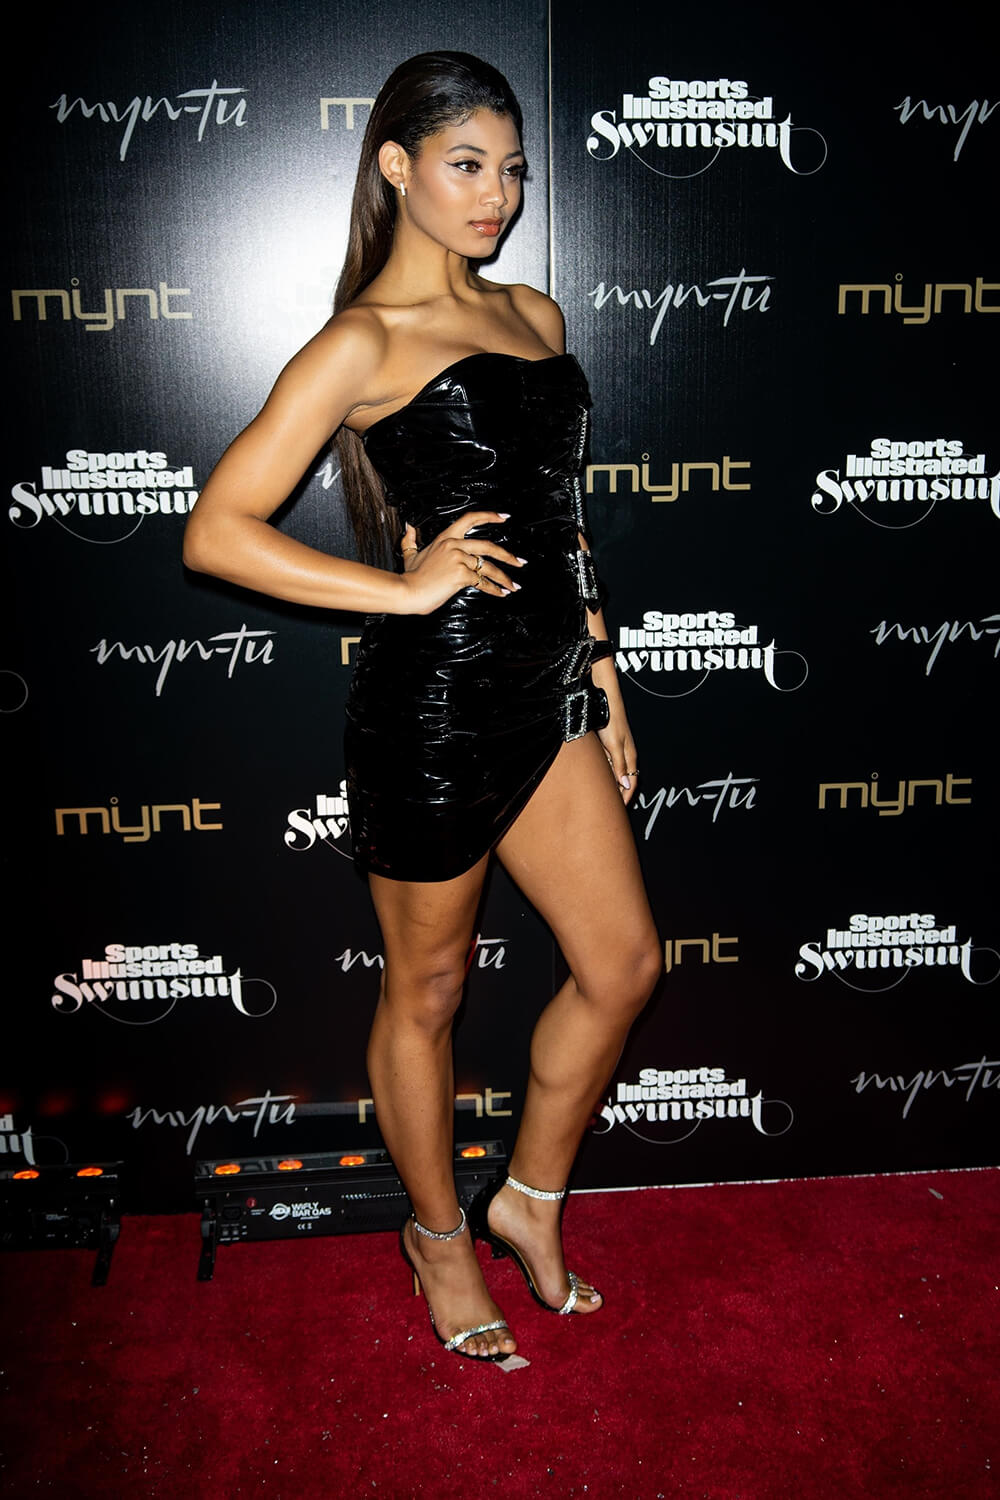 Danielle Herrington attends Sports Illustrated Swimsuit issue launch